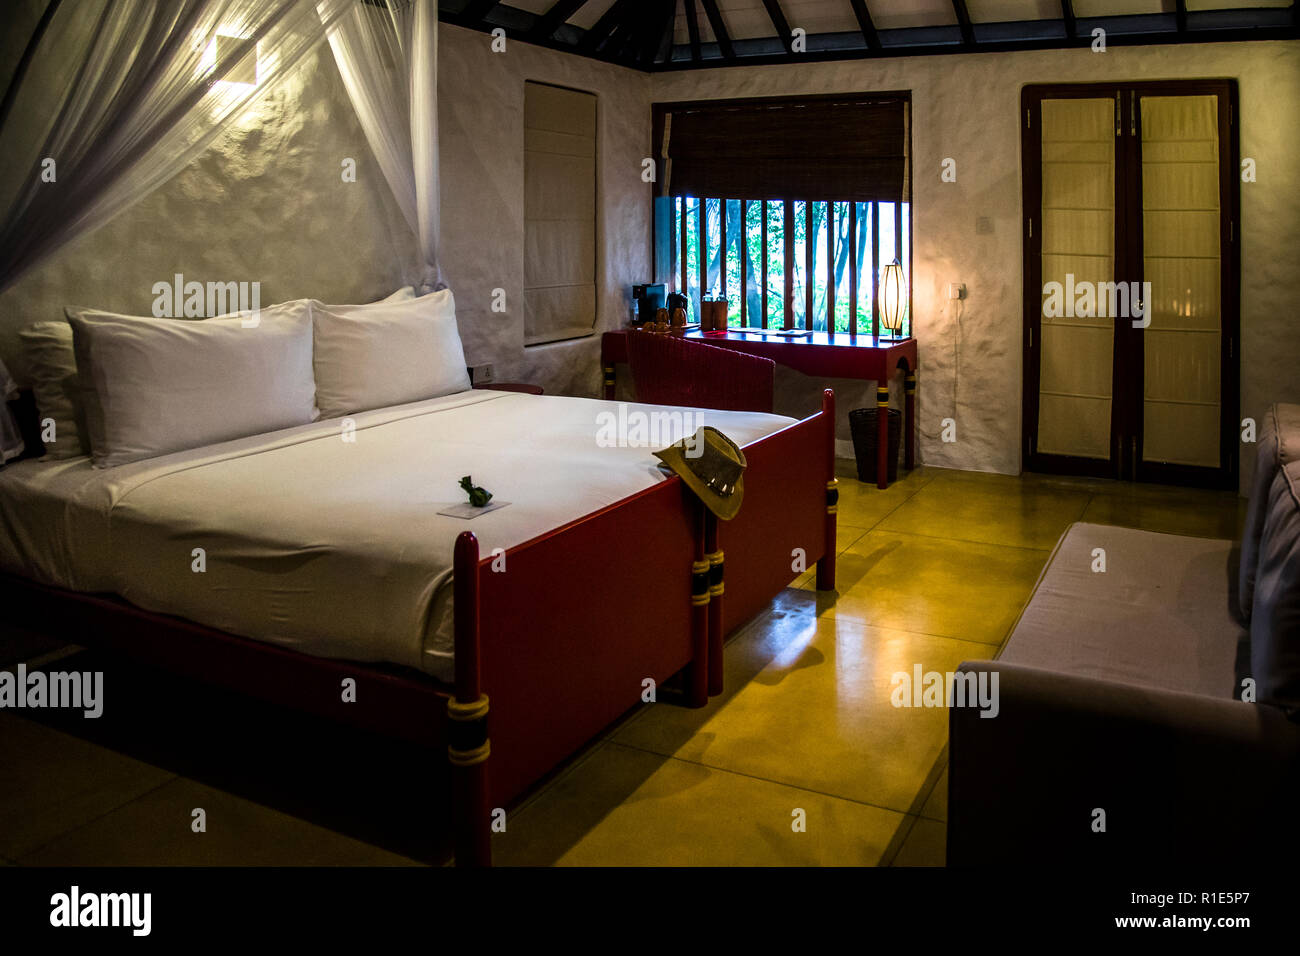 Hotel bedroom in Sri Lanka - Stock Image